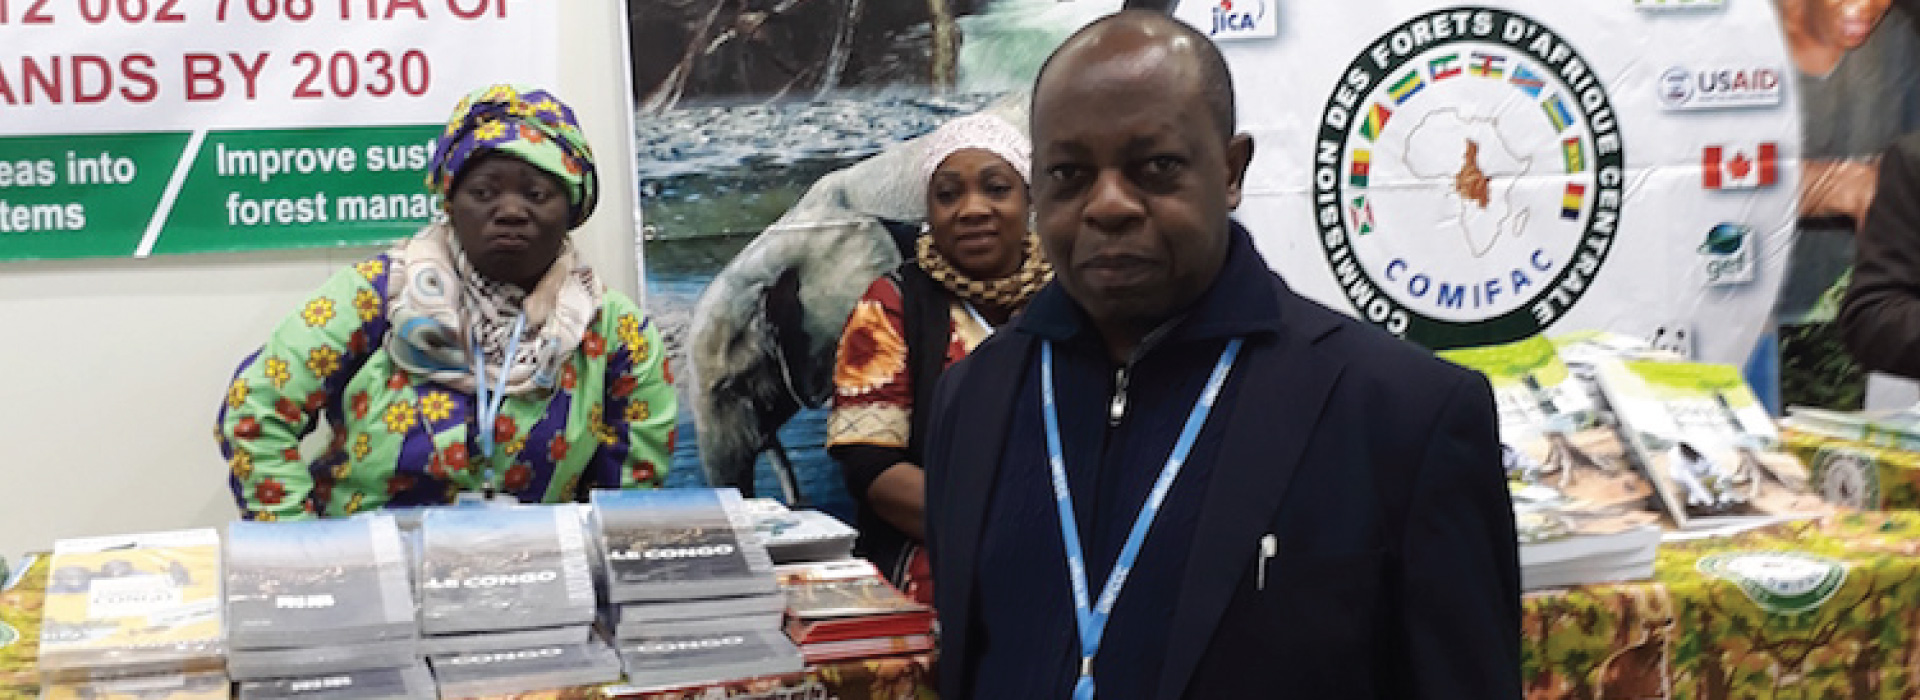 Collaborating for the Congo Basic and sharing Laudato Si' in COP23